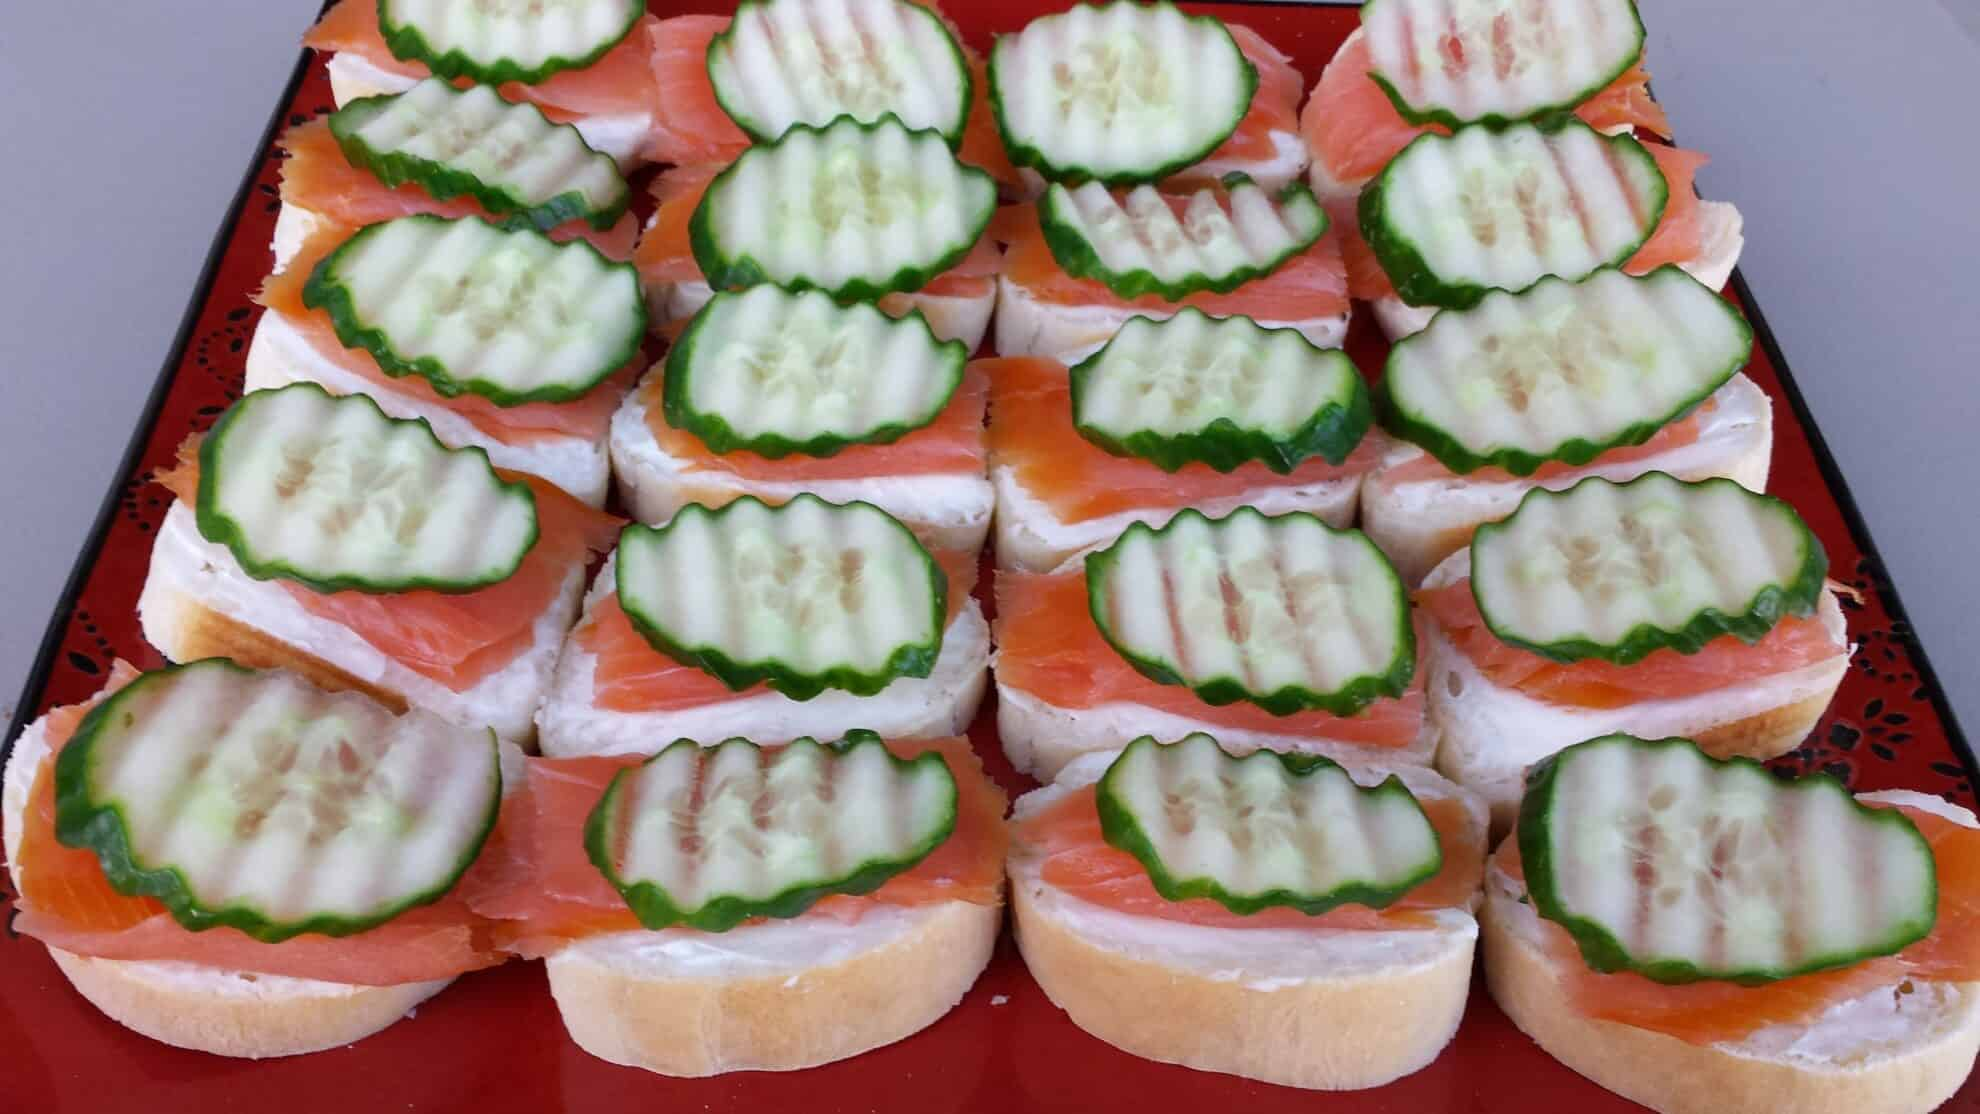 Smoked salmon canap s valya 39 s taste of home for Canape garnishes